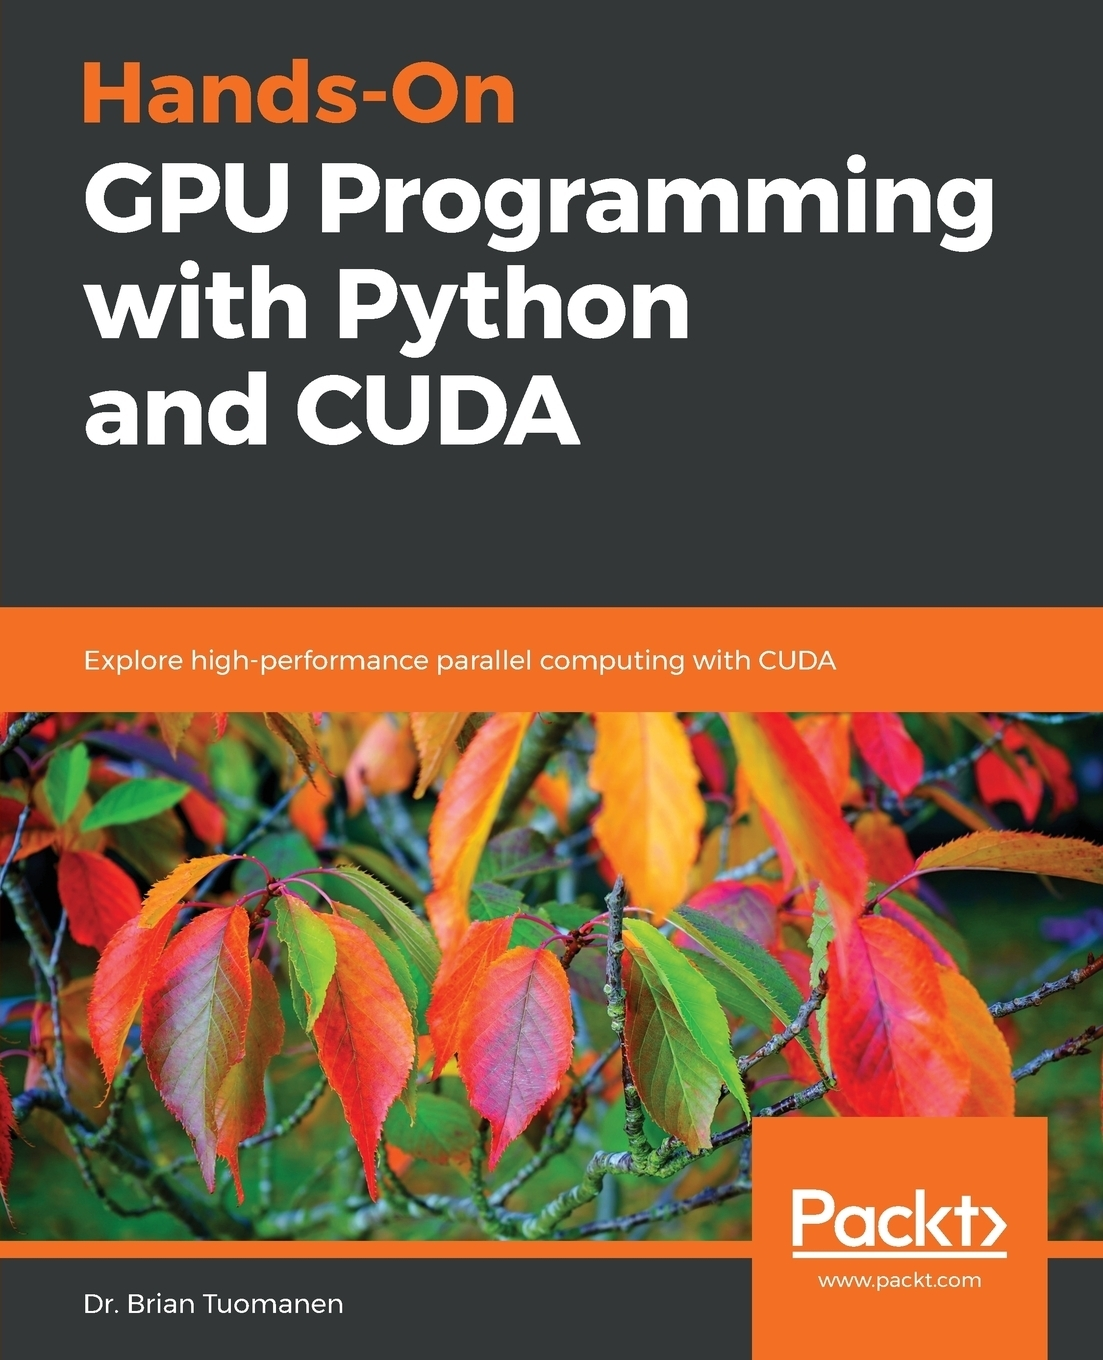 Dr. Brian Tuomanen. Hands-On GPU Programming with Python and CUDA